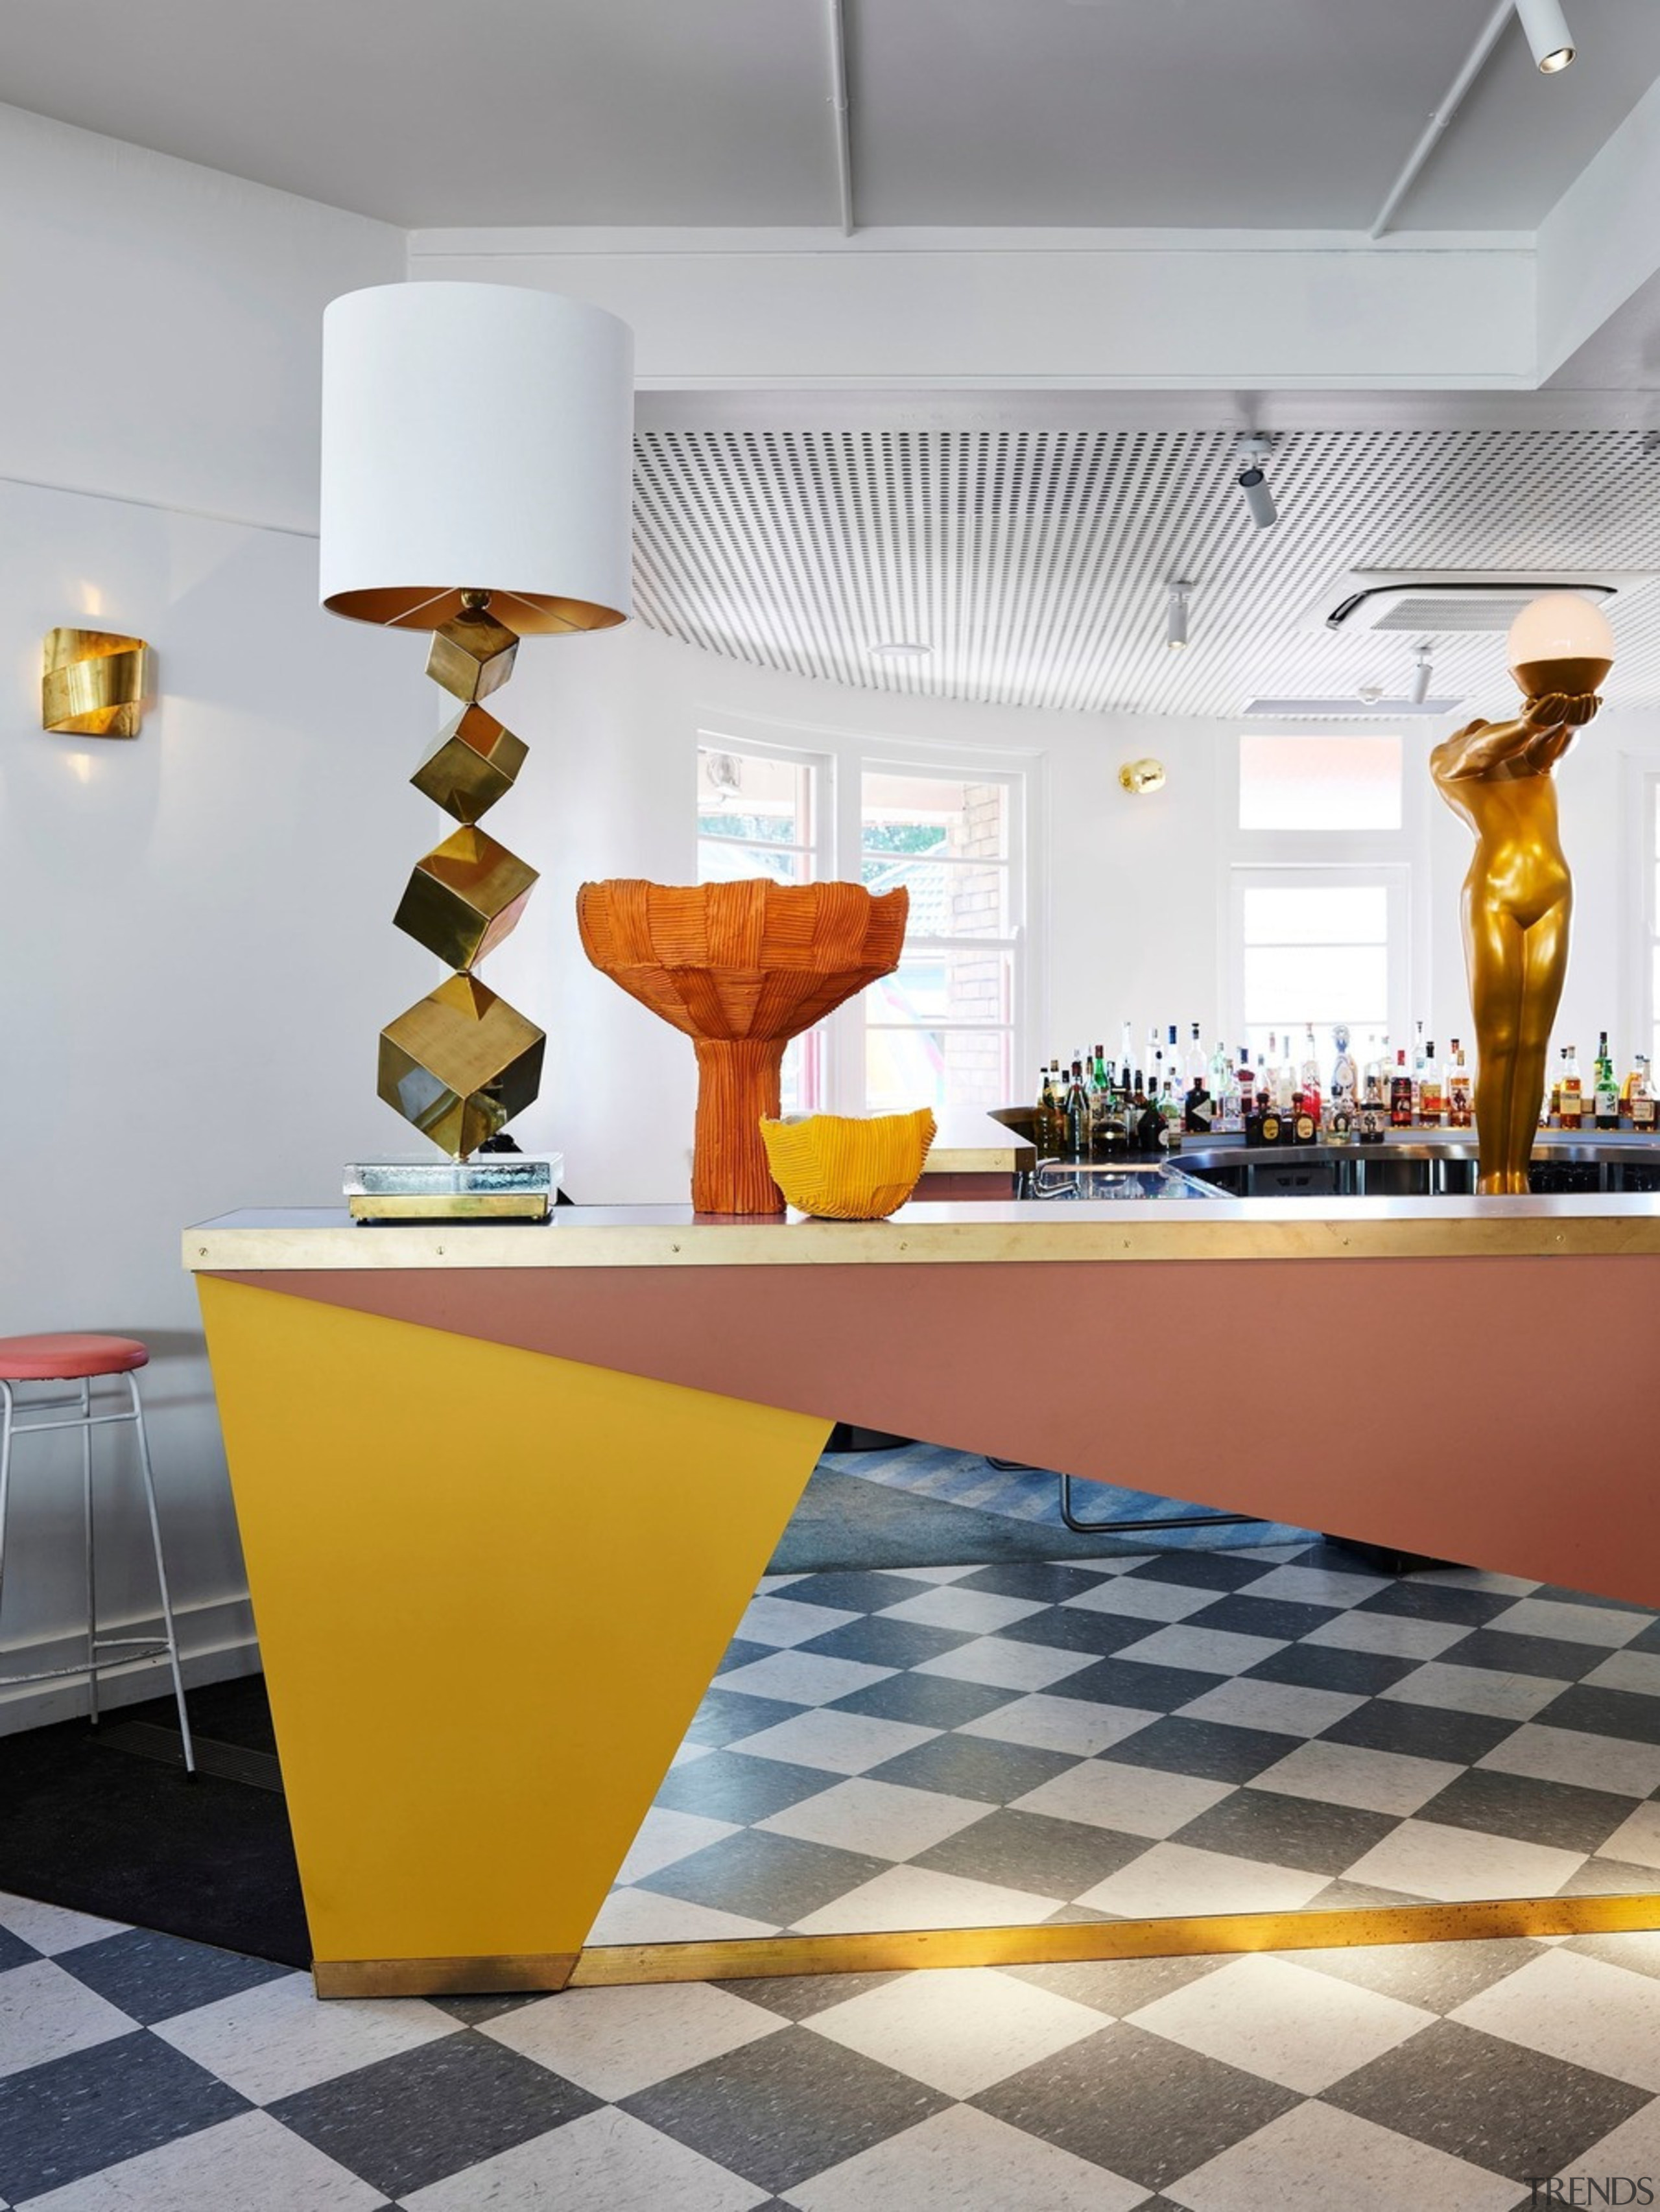 The irregularly shaped main bar finished in coloured architecture, ceiling, countertop, floor, flooring, furniture, interior design, table, tile, wall, yellow, gray